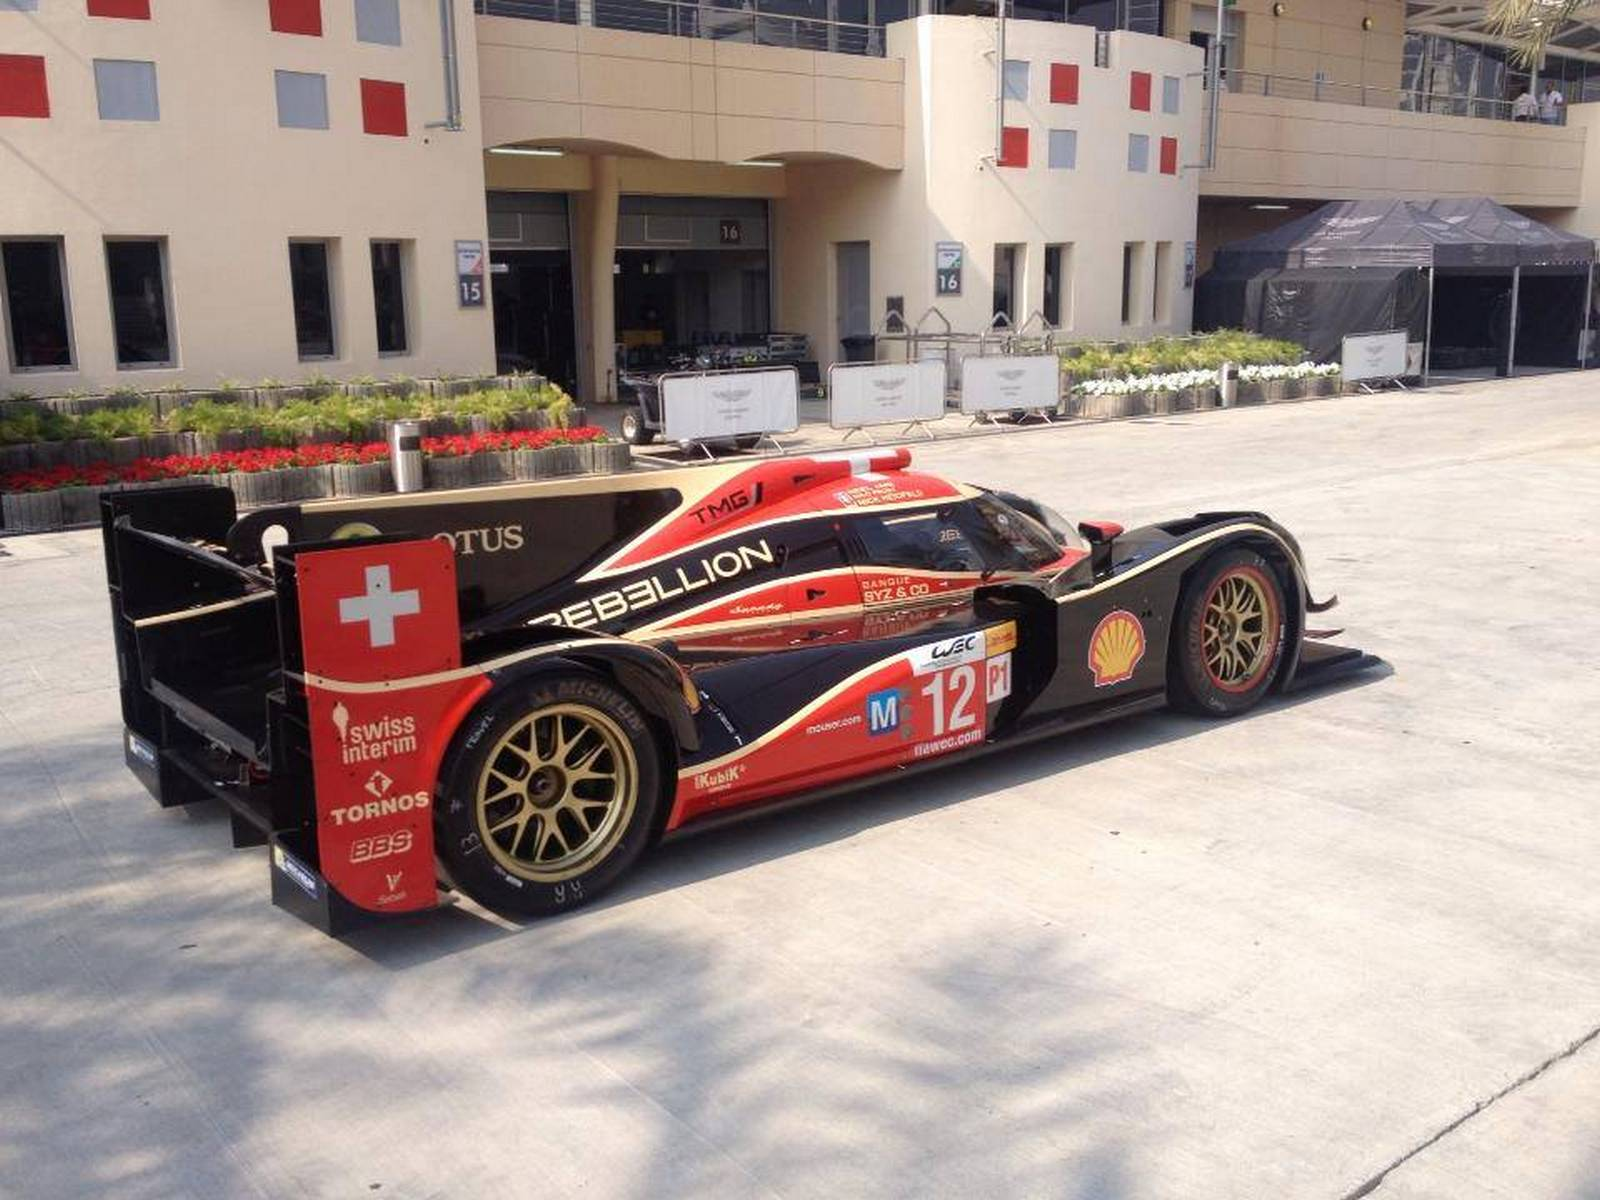 For Sale: Rebellion Racing Lola-Toyota LMP1 Racecar - GTspirit